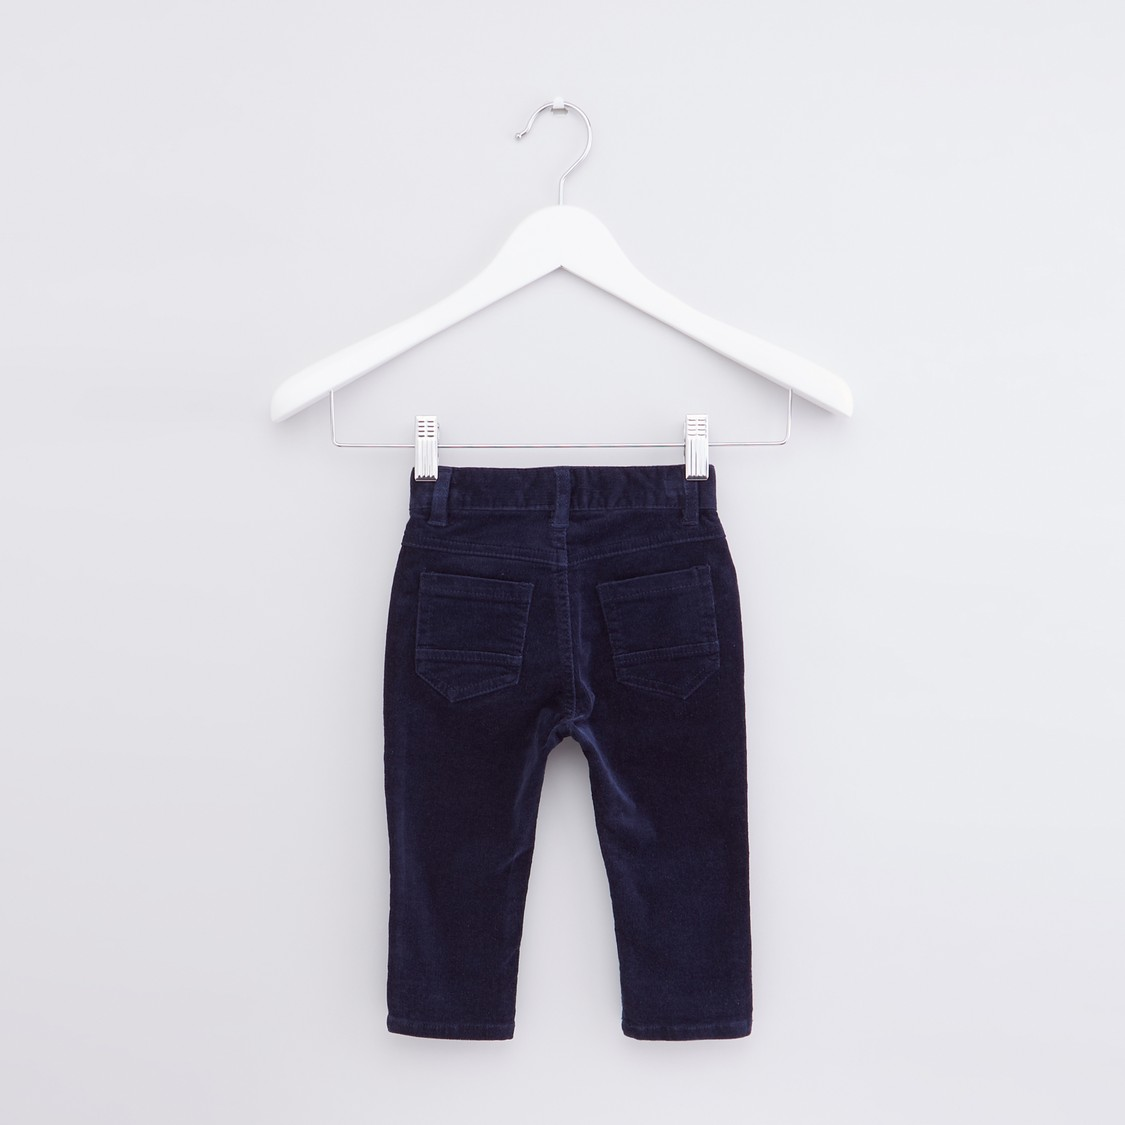 Textured Pants with Button Closure and Pocket Detail